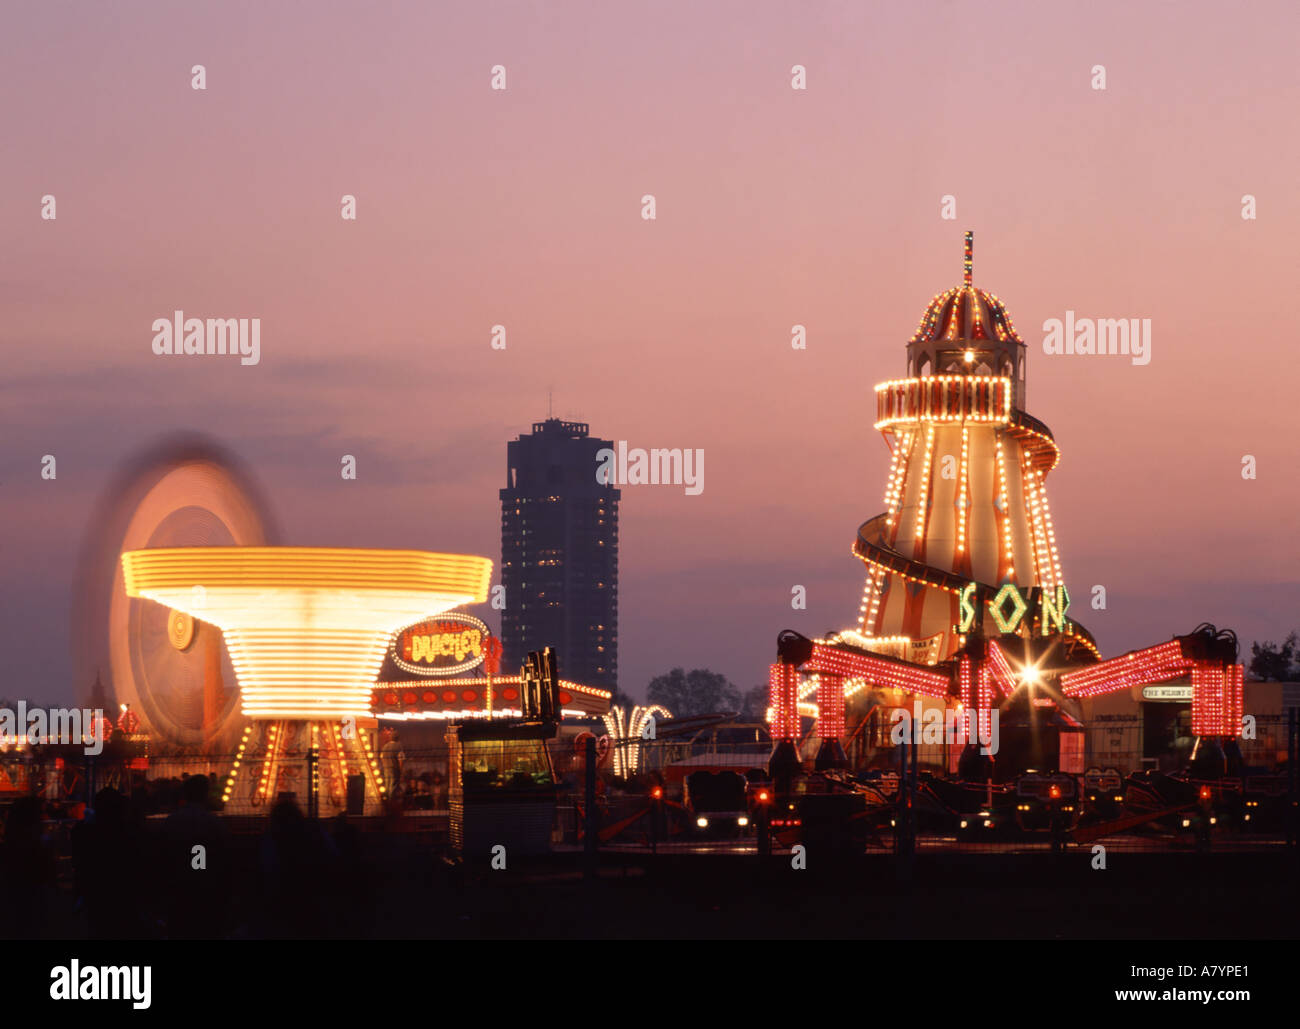 London Hyde Park special event fairground at dusk with tower block of Knightsbridge Army barracks distant Stock Photo